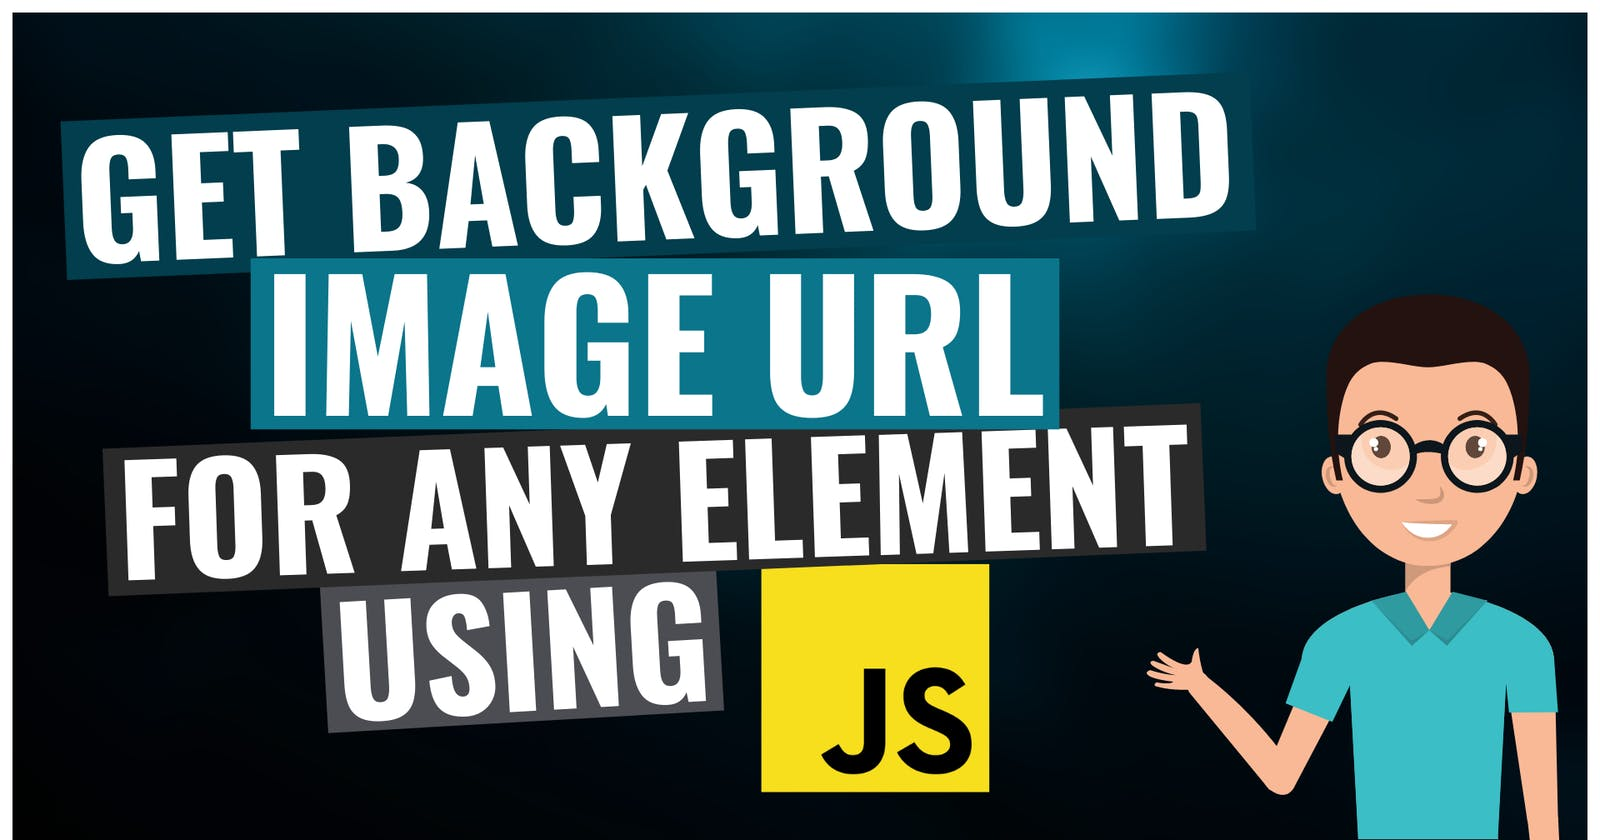 Get background image URL for any element using JavaScript